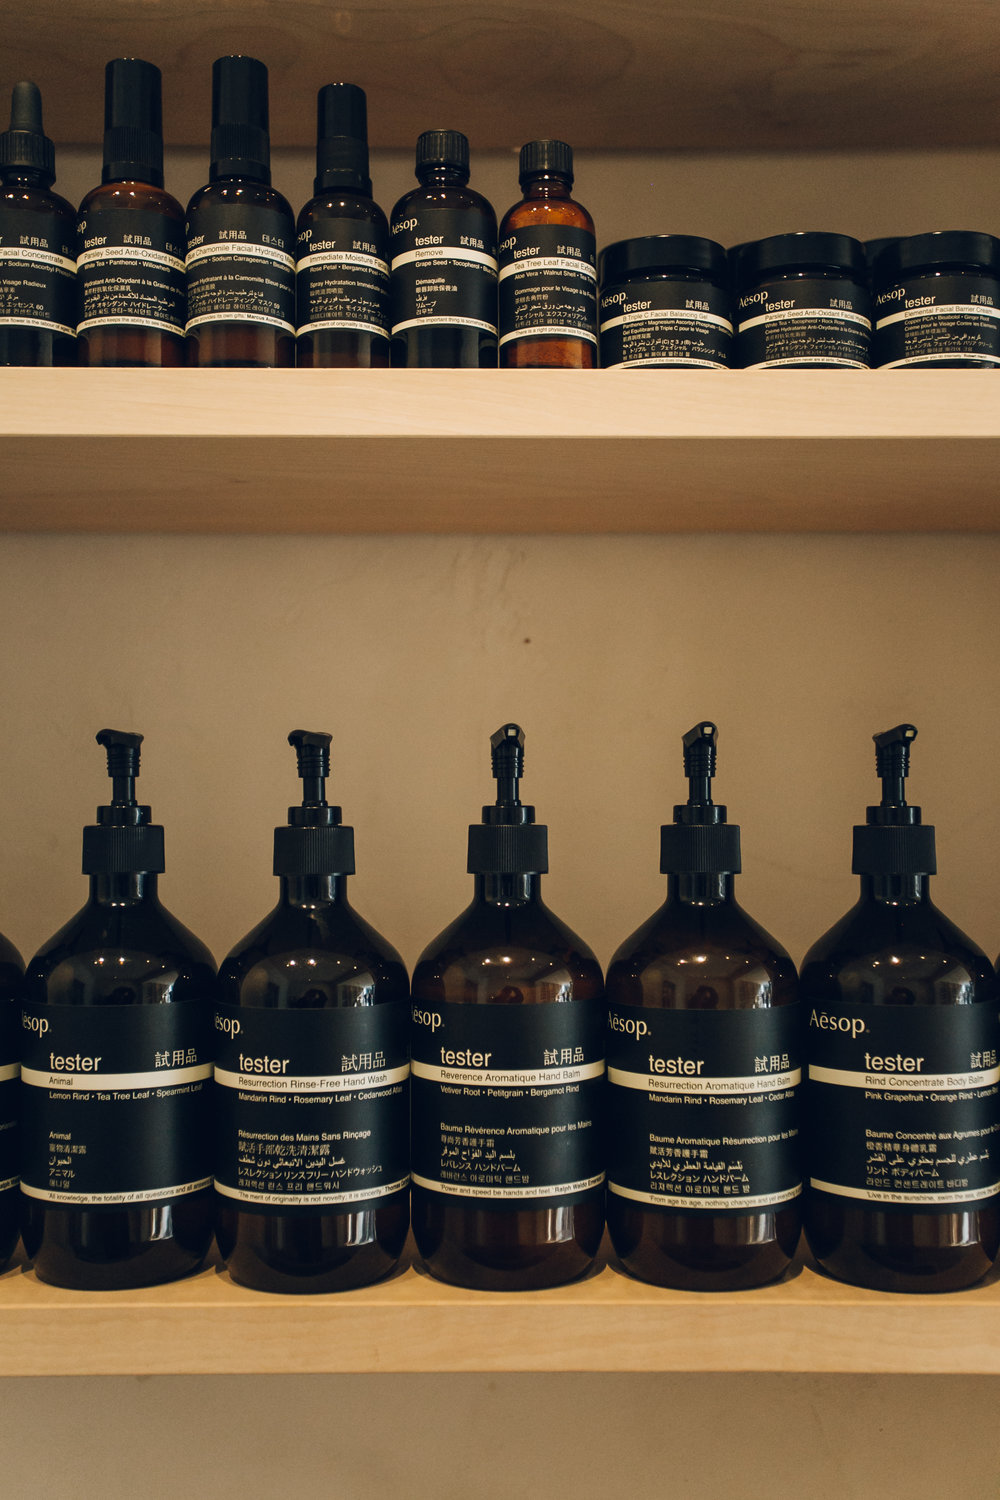 Aesop store in Stockbridge, Edinburgh by Haarkon